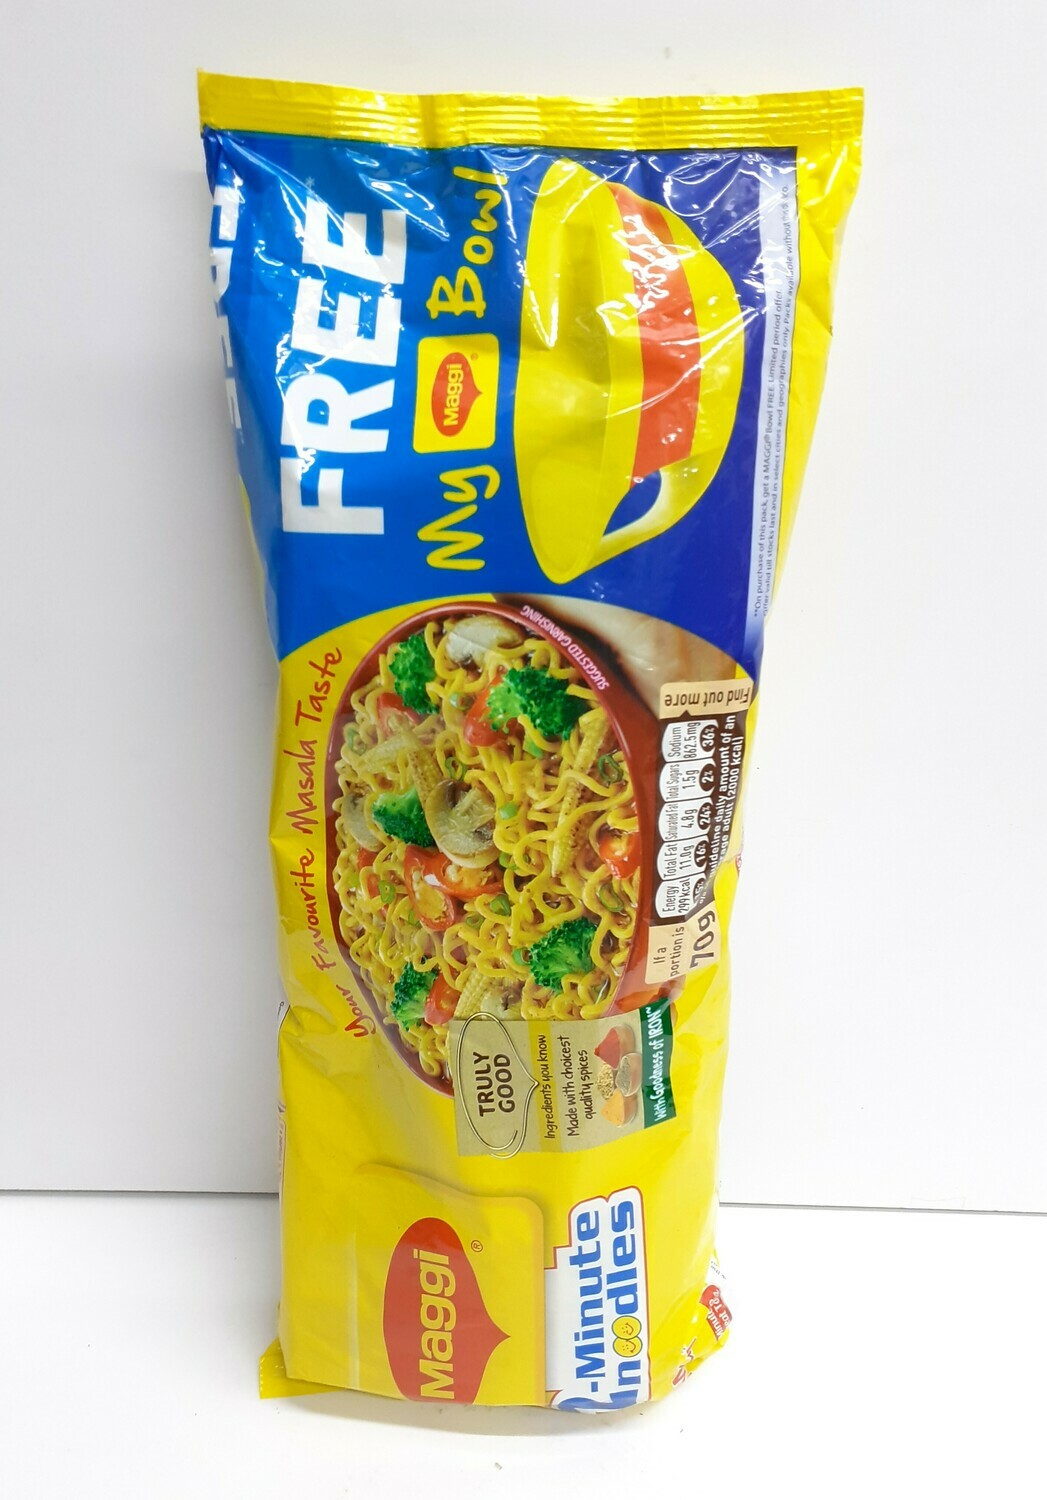 2-Minute Noodles MAGGI 70 g